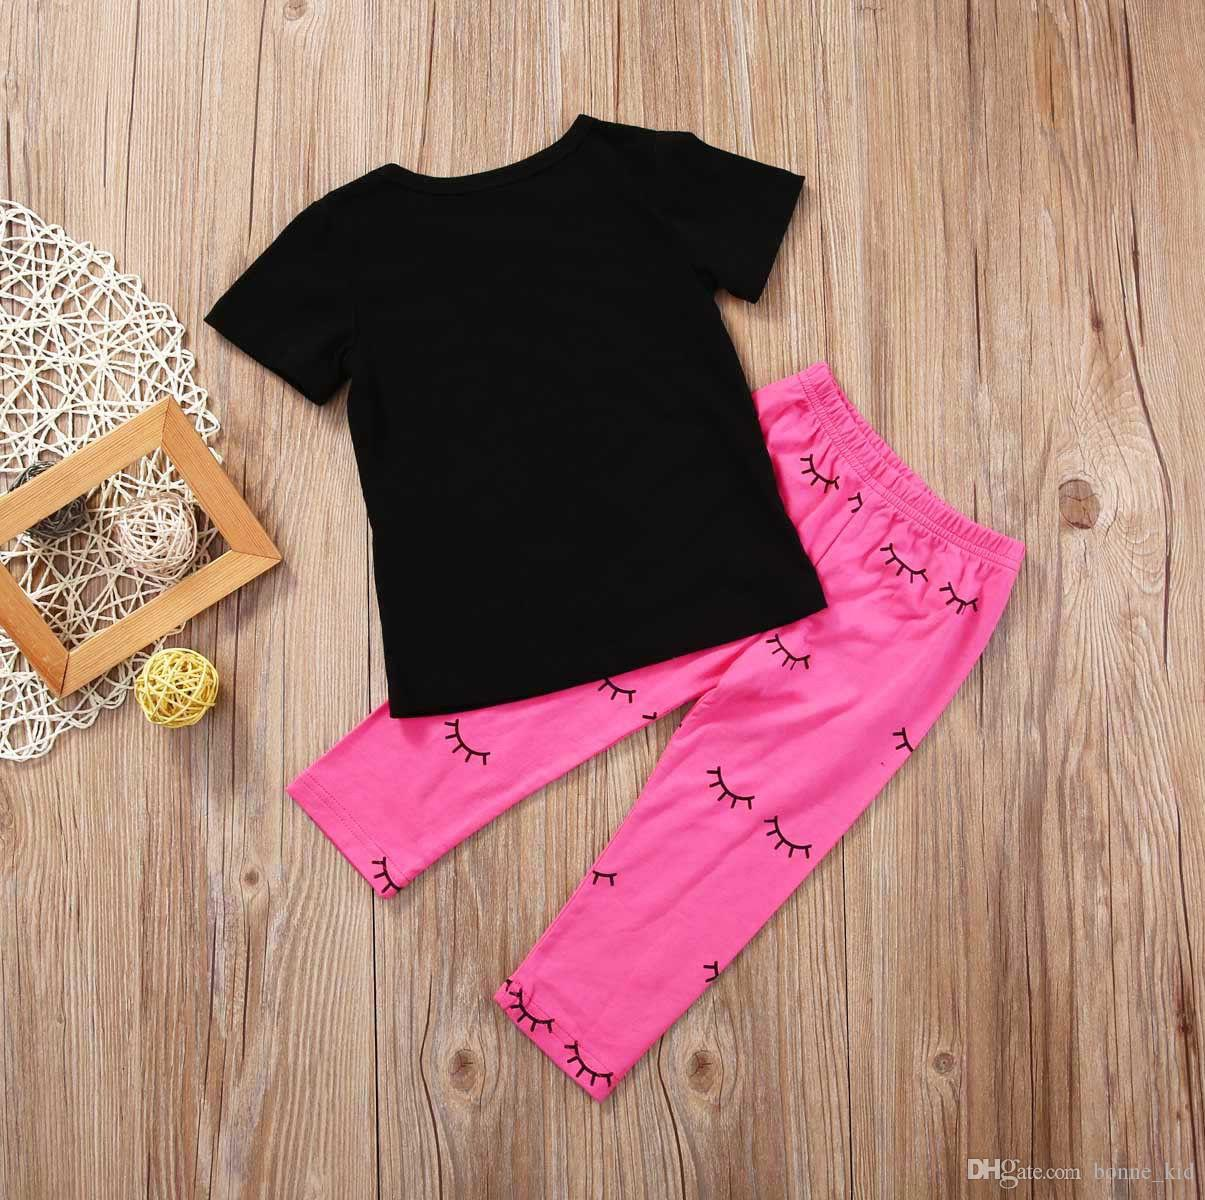 Toddler Kids Baby Girls Outfit Clothes T-shirt Tops+Long Pants Trousers Set Kiss Black Tee Eyelash Candy Yum Yum Bottoms Kids Clothing